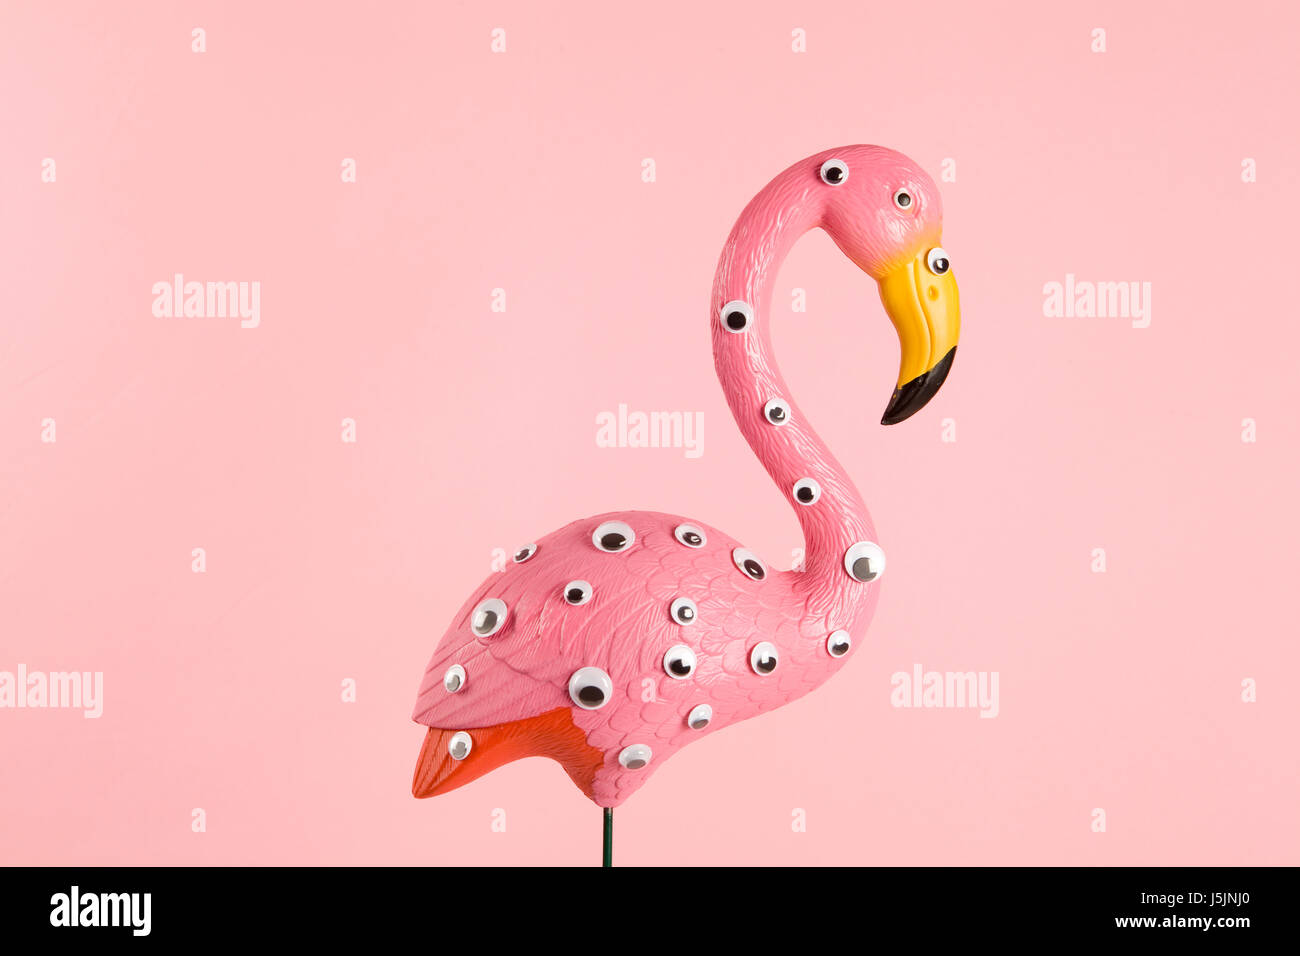 quirky and freak pink plastic flamingo on a pink background with numerous eyes gradient and tones on tones - Stock Image